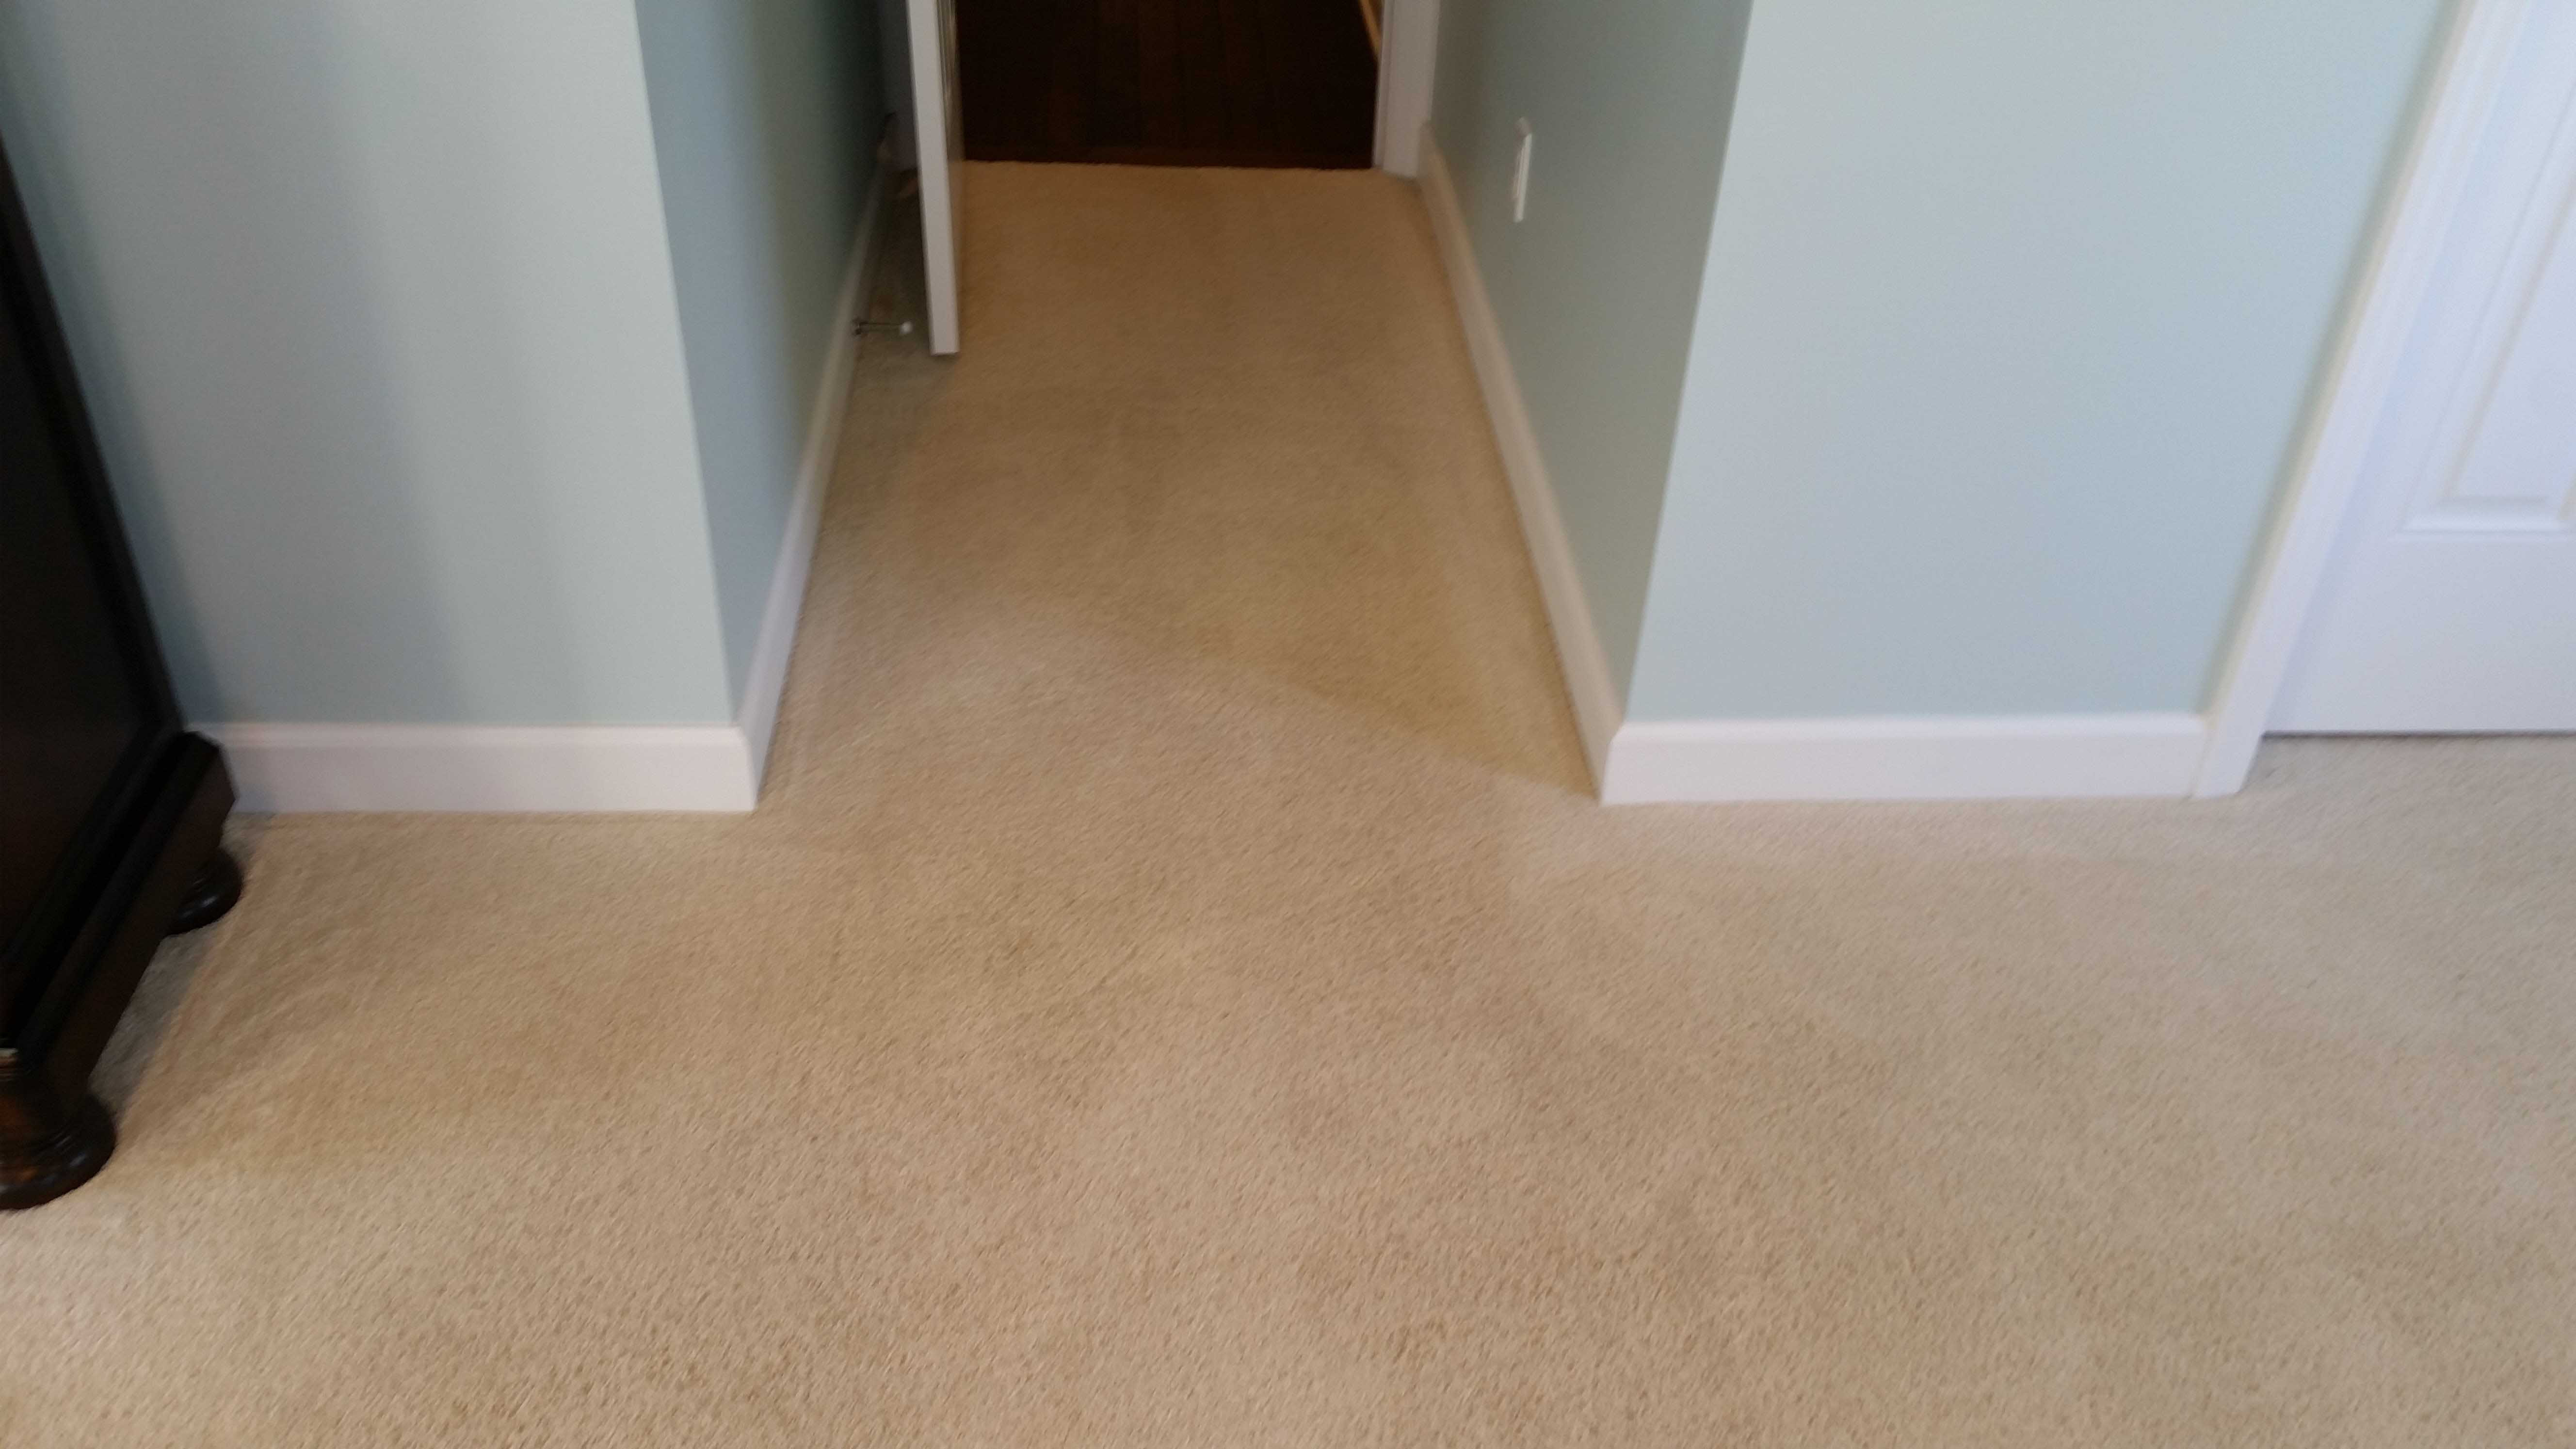 sandless hardwood floor refinishing products of cincinnati maintenance home cincinnati carpet cleaning services in fast drying capet cleaning